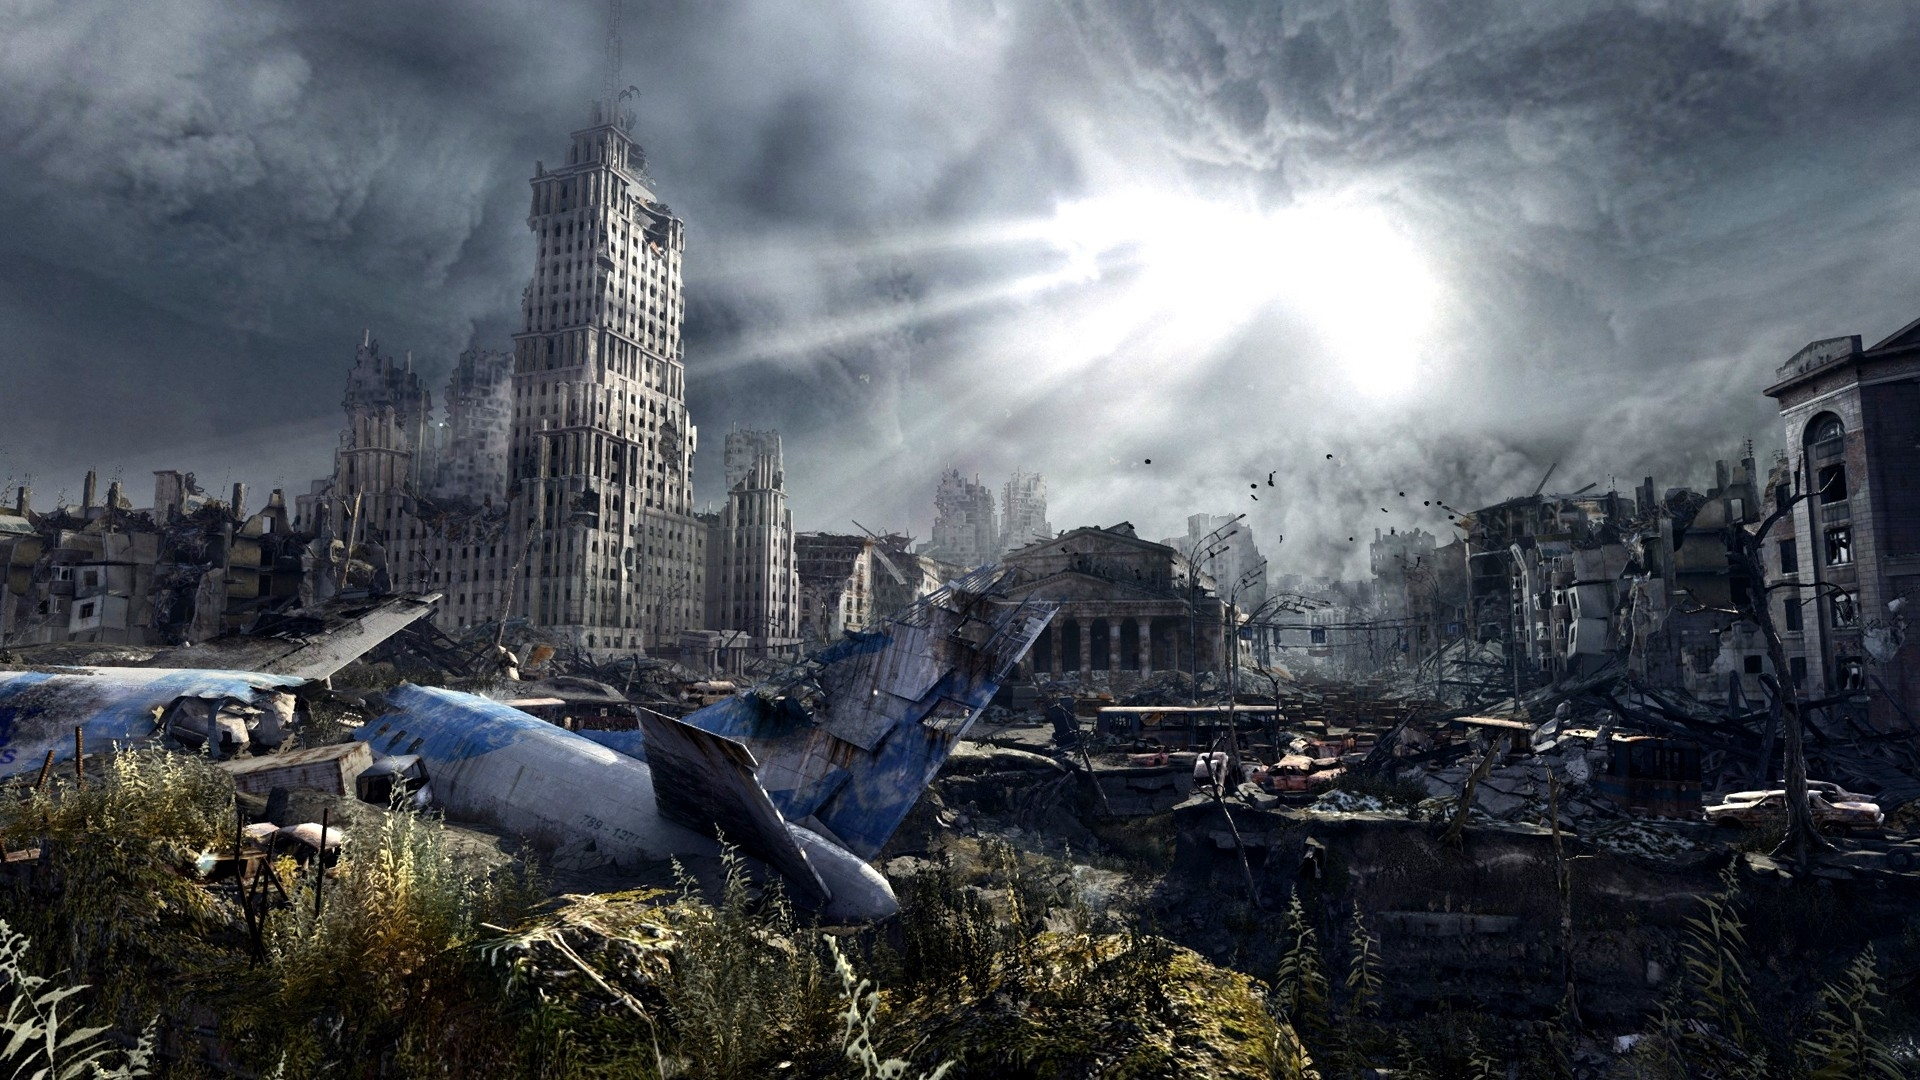 post-apocalyptic-city-zombie (jpeg image, 1920 × 1080 pixels